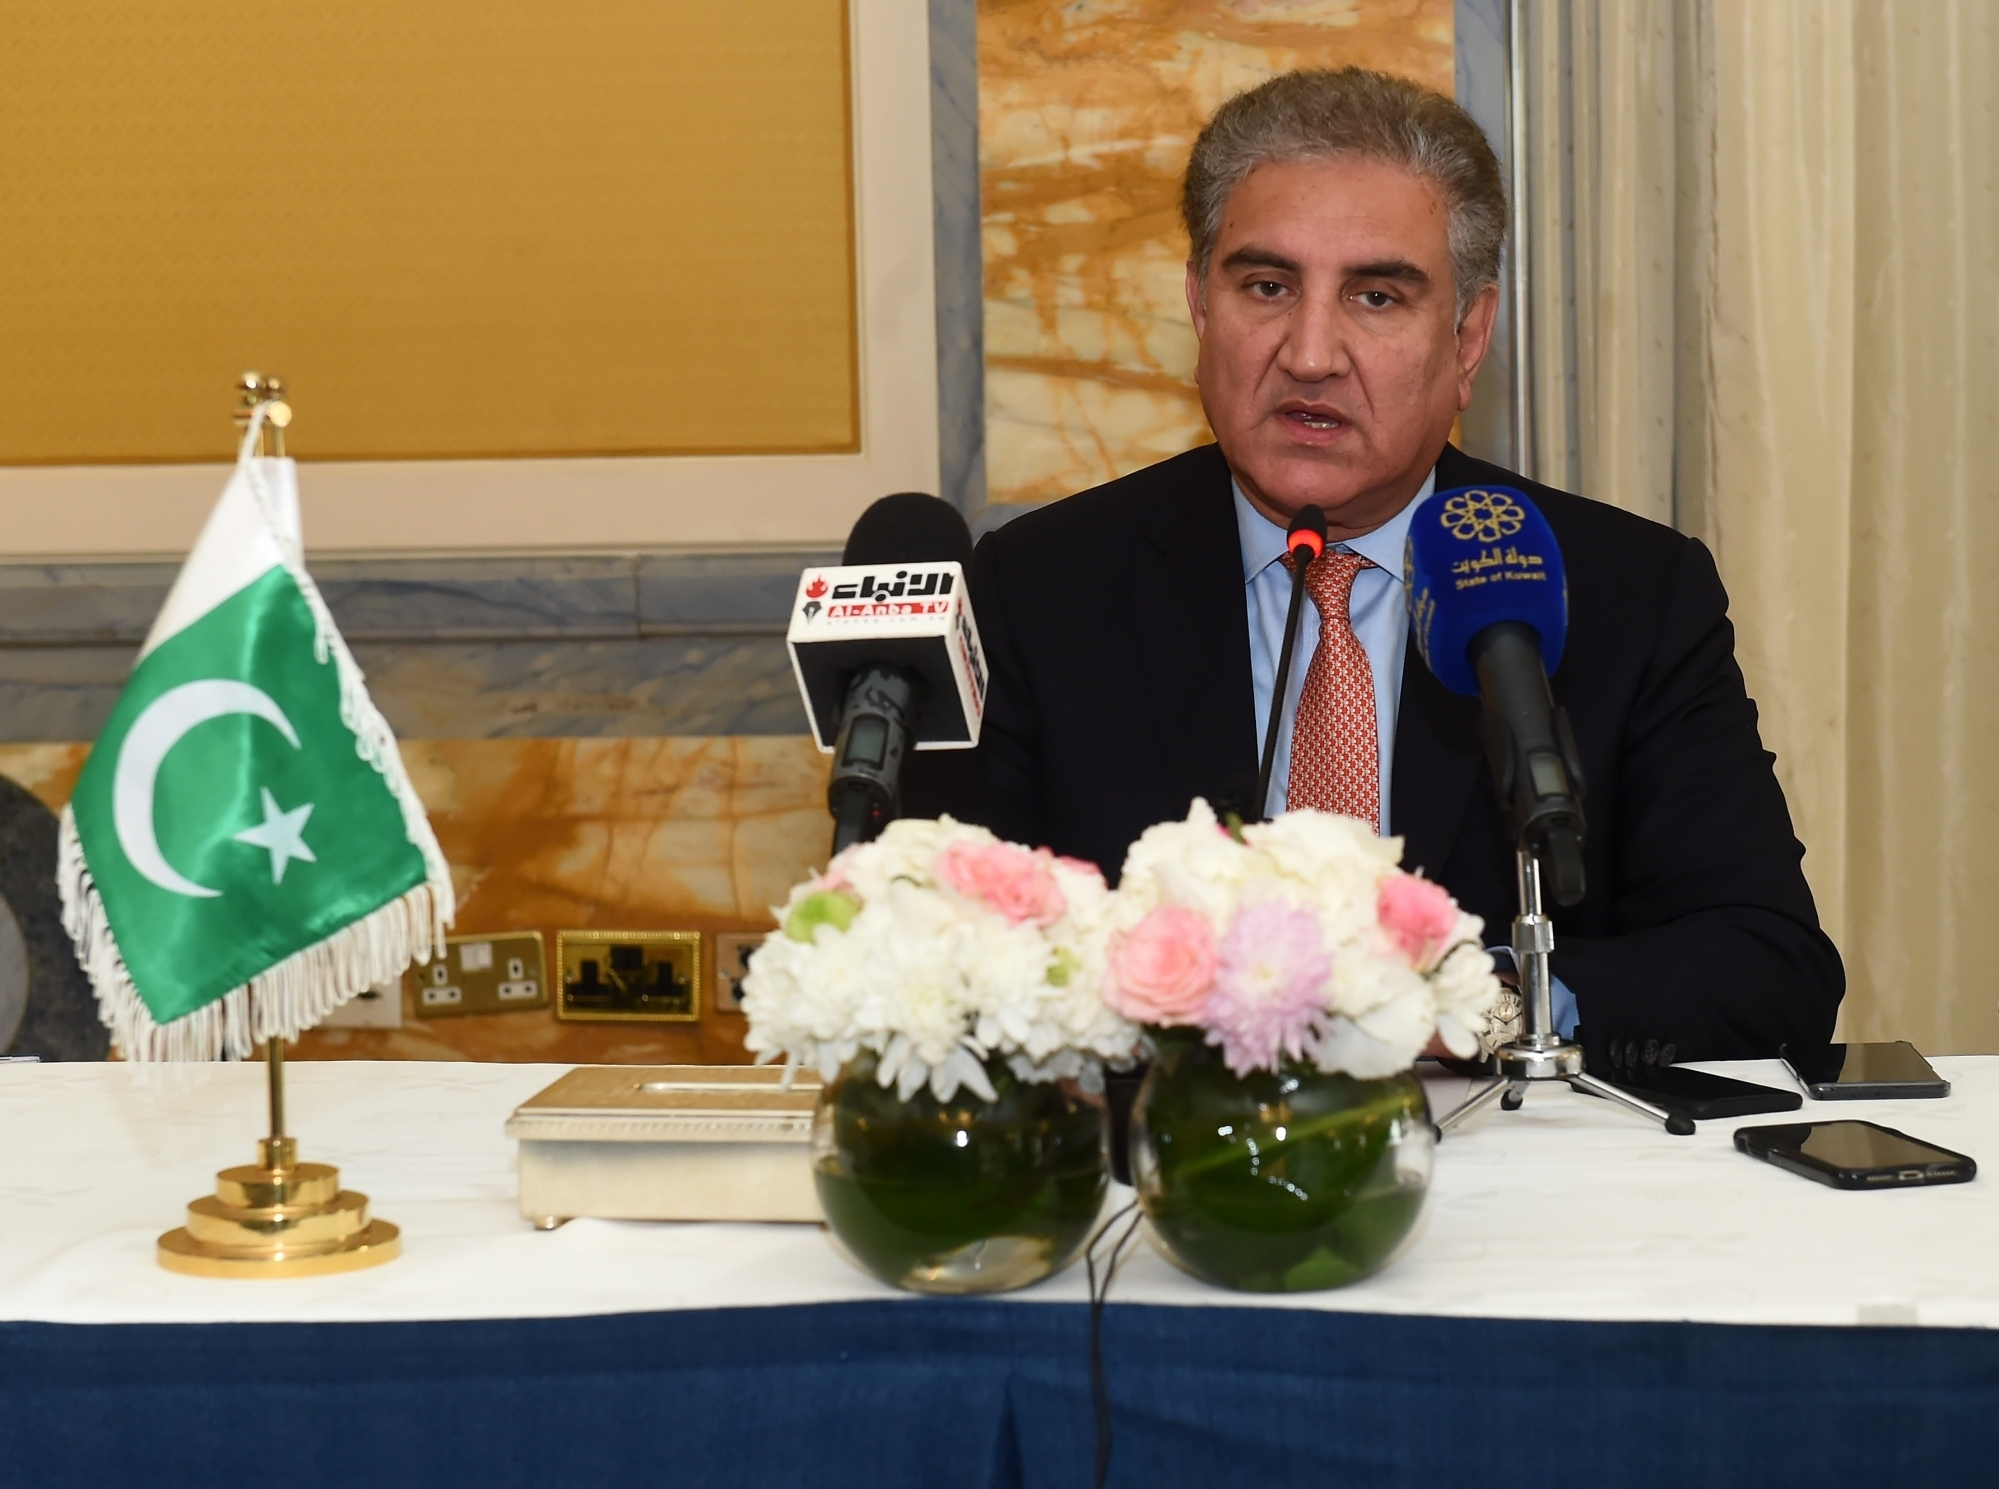 KUWAIT CITY, May 19, 2019 (Xinhua) -- Pakistani Foreign Minister Shah Mahmood Qureshi speaks at a press conference in Kuwait City, Kuwait, on May 19, 2019. Pakistan is ready to facilitate de-escalation of tension in the region and support peace and stability, visiting Pakistani Foreign Minister Shah Mahmood Qureshi said here on Sunday. (Xinhua/Asad/IANS)